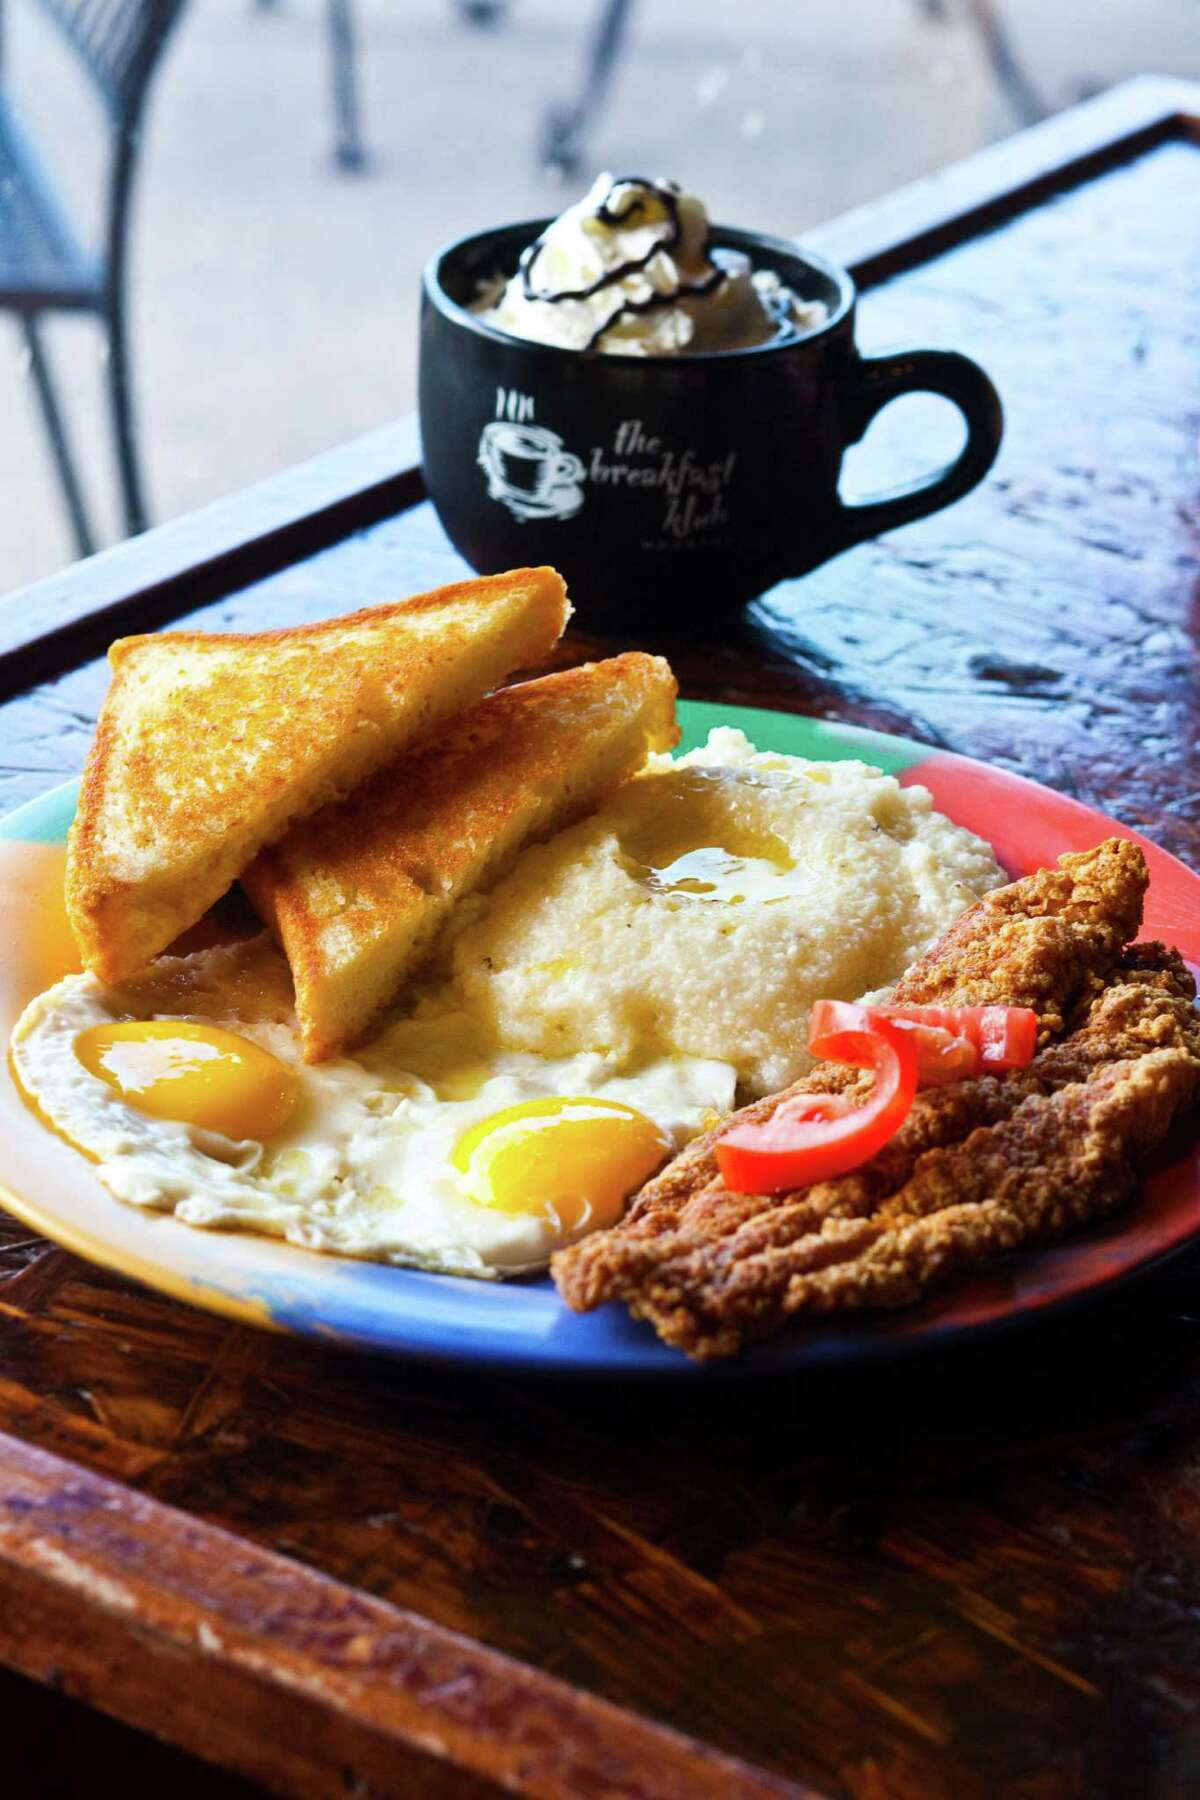 Katfish & Grits plate. Marcus Davis who along with his wife Mel, opened Breakfast Klub in Houston 10 years ago. They will be marking their 10th anniversary on Oct. 1. Photographed Sept. 20, 2011 in Houston. (Eric Kayne/For the Chronicle)